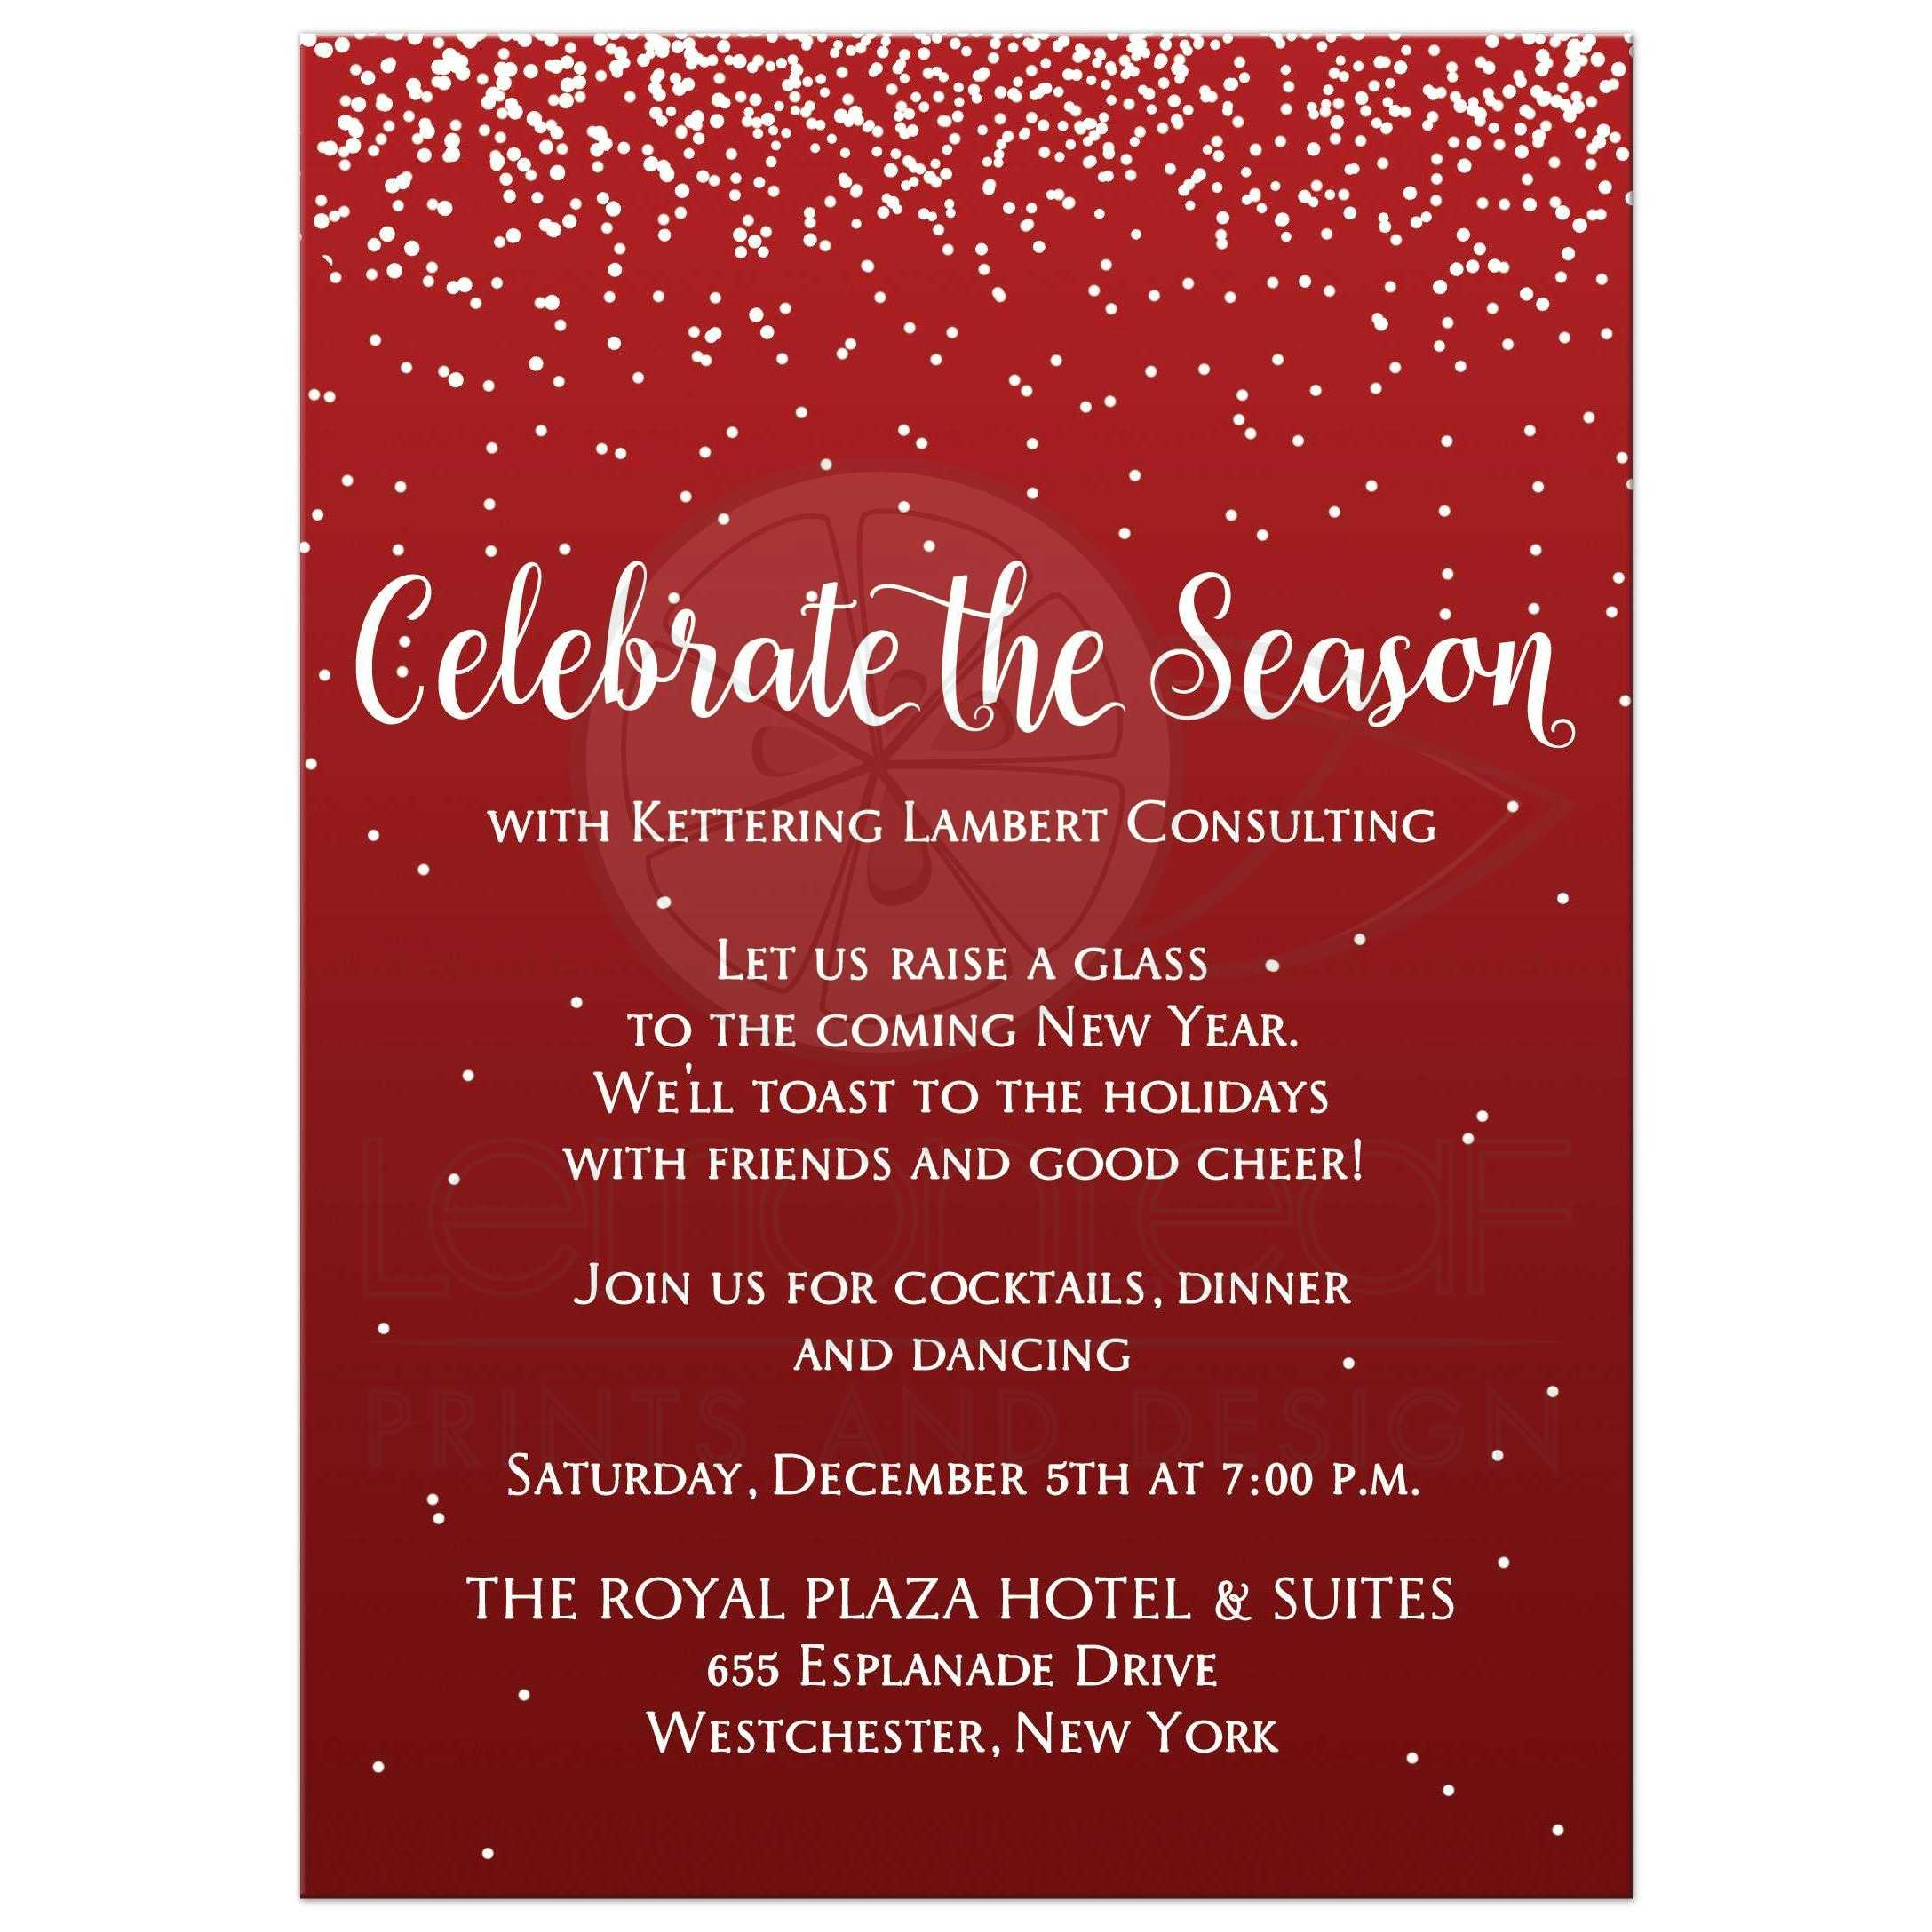 Holiday Party Invitation 2 | Celebrate the Season | Red, Silver Gray ...